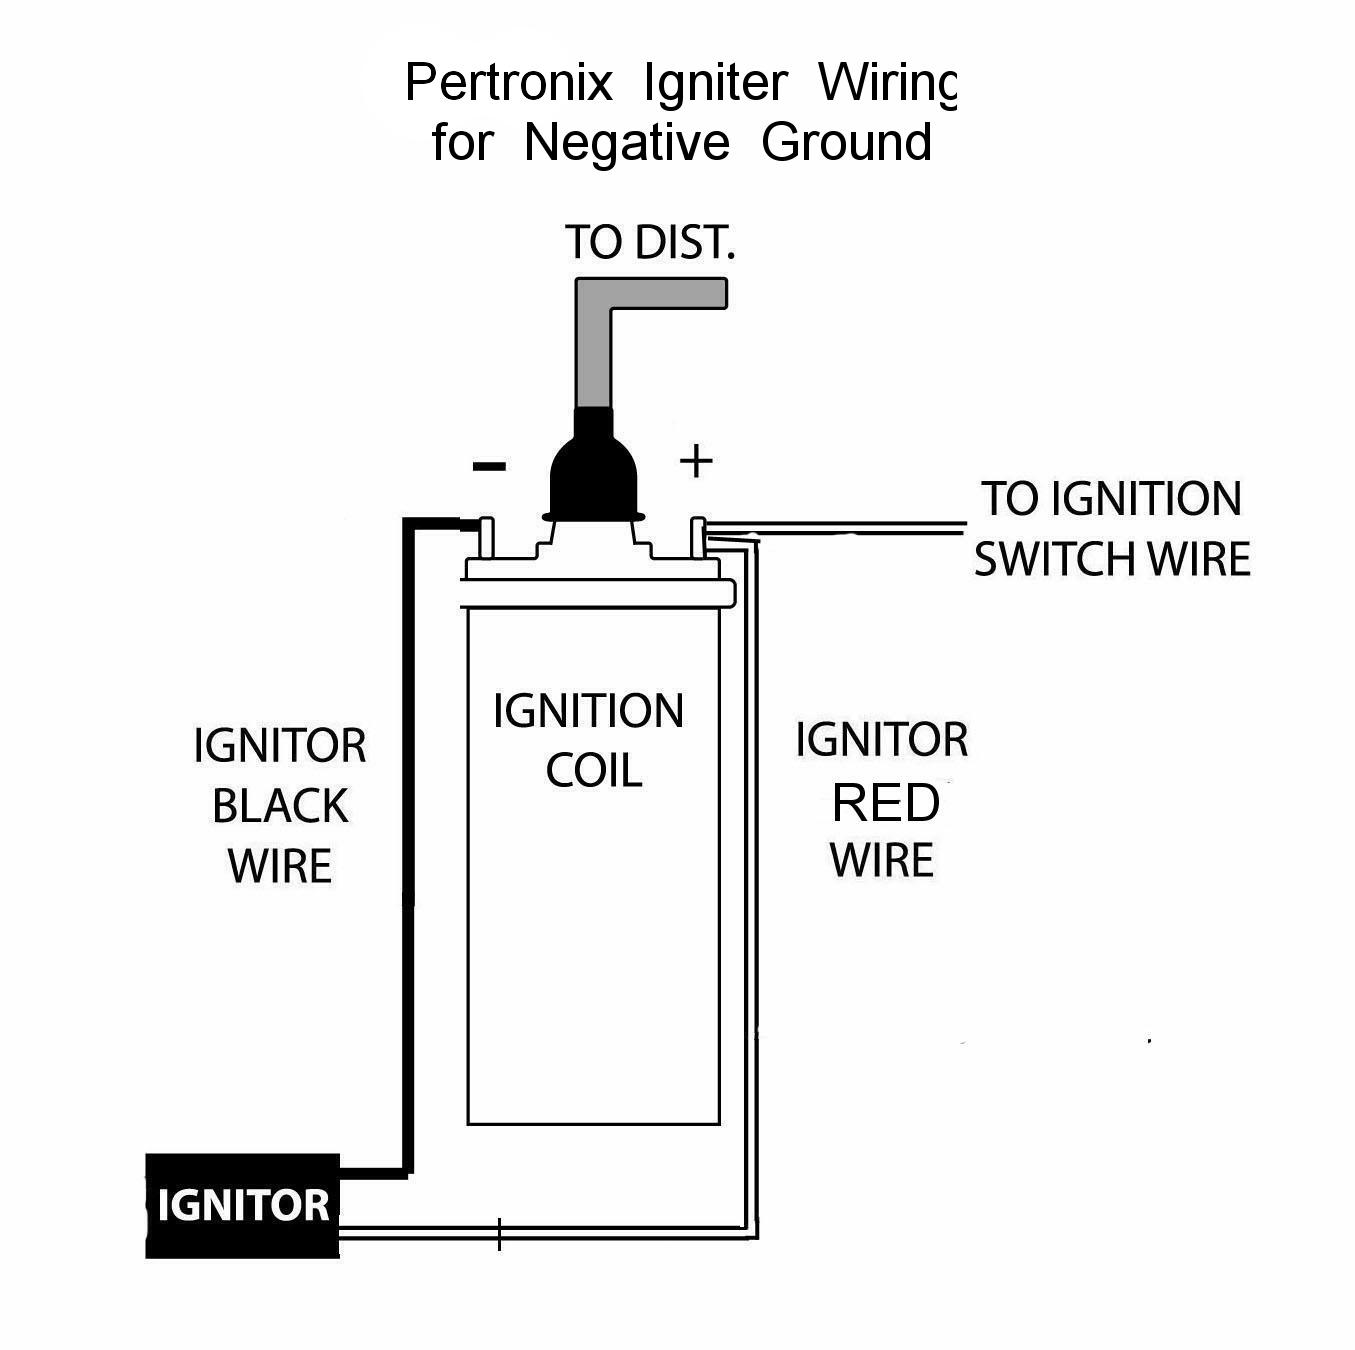 hight resolution of pertronix wiring diagram manual e book pertronix ignitor ii wiring diagram pertronix negative ground wiringpertronix wiring